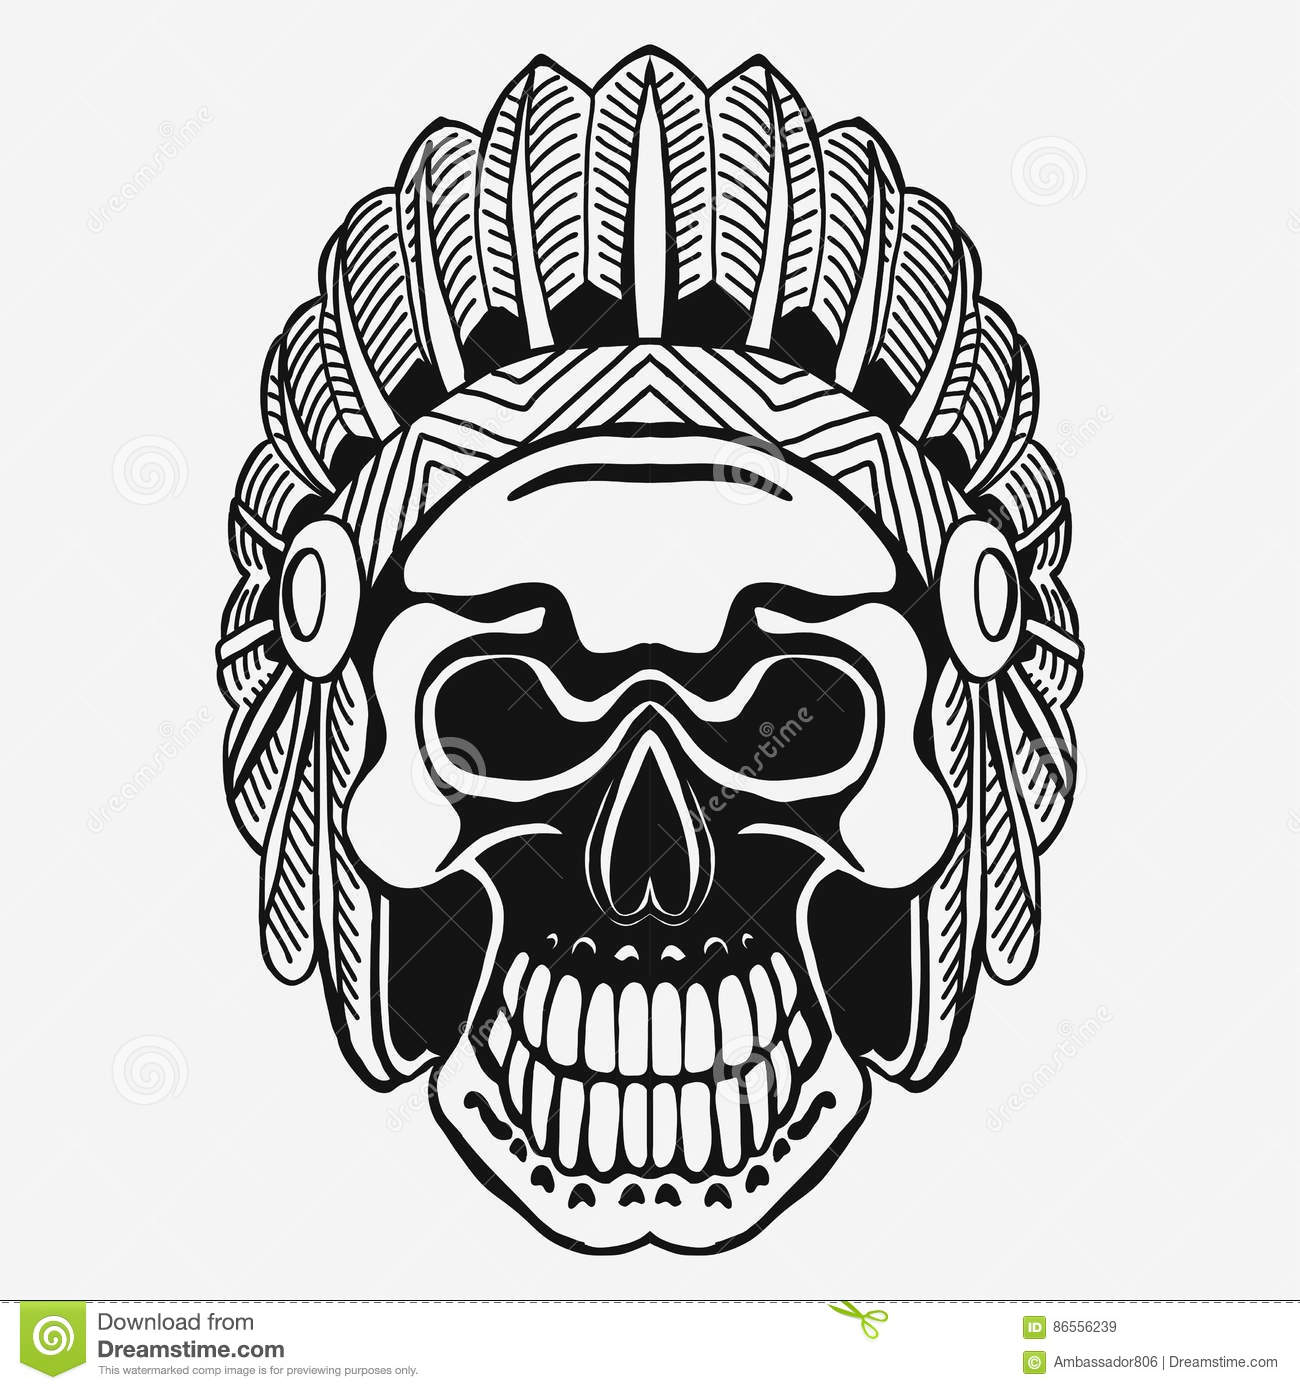 ff943a38924 Indian Skull with Tribal feather Hat. Dead Chief in war bonnet. Native  American Indian Headdress. Vector